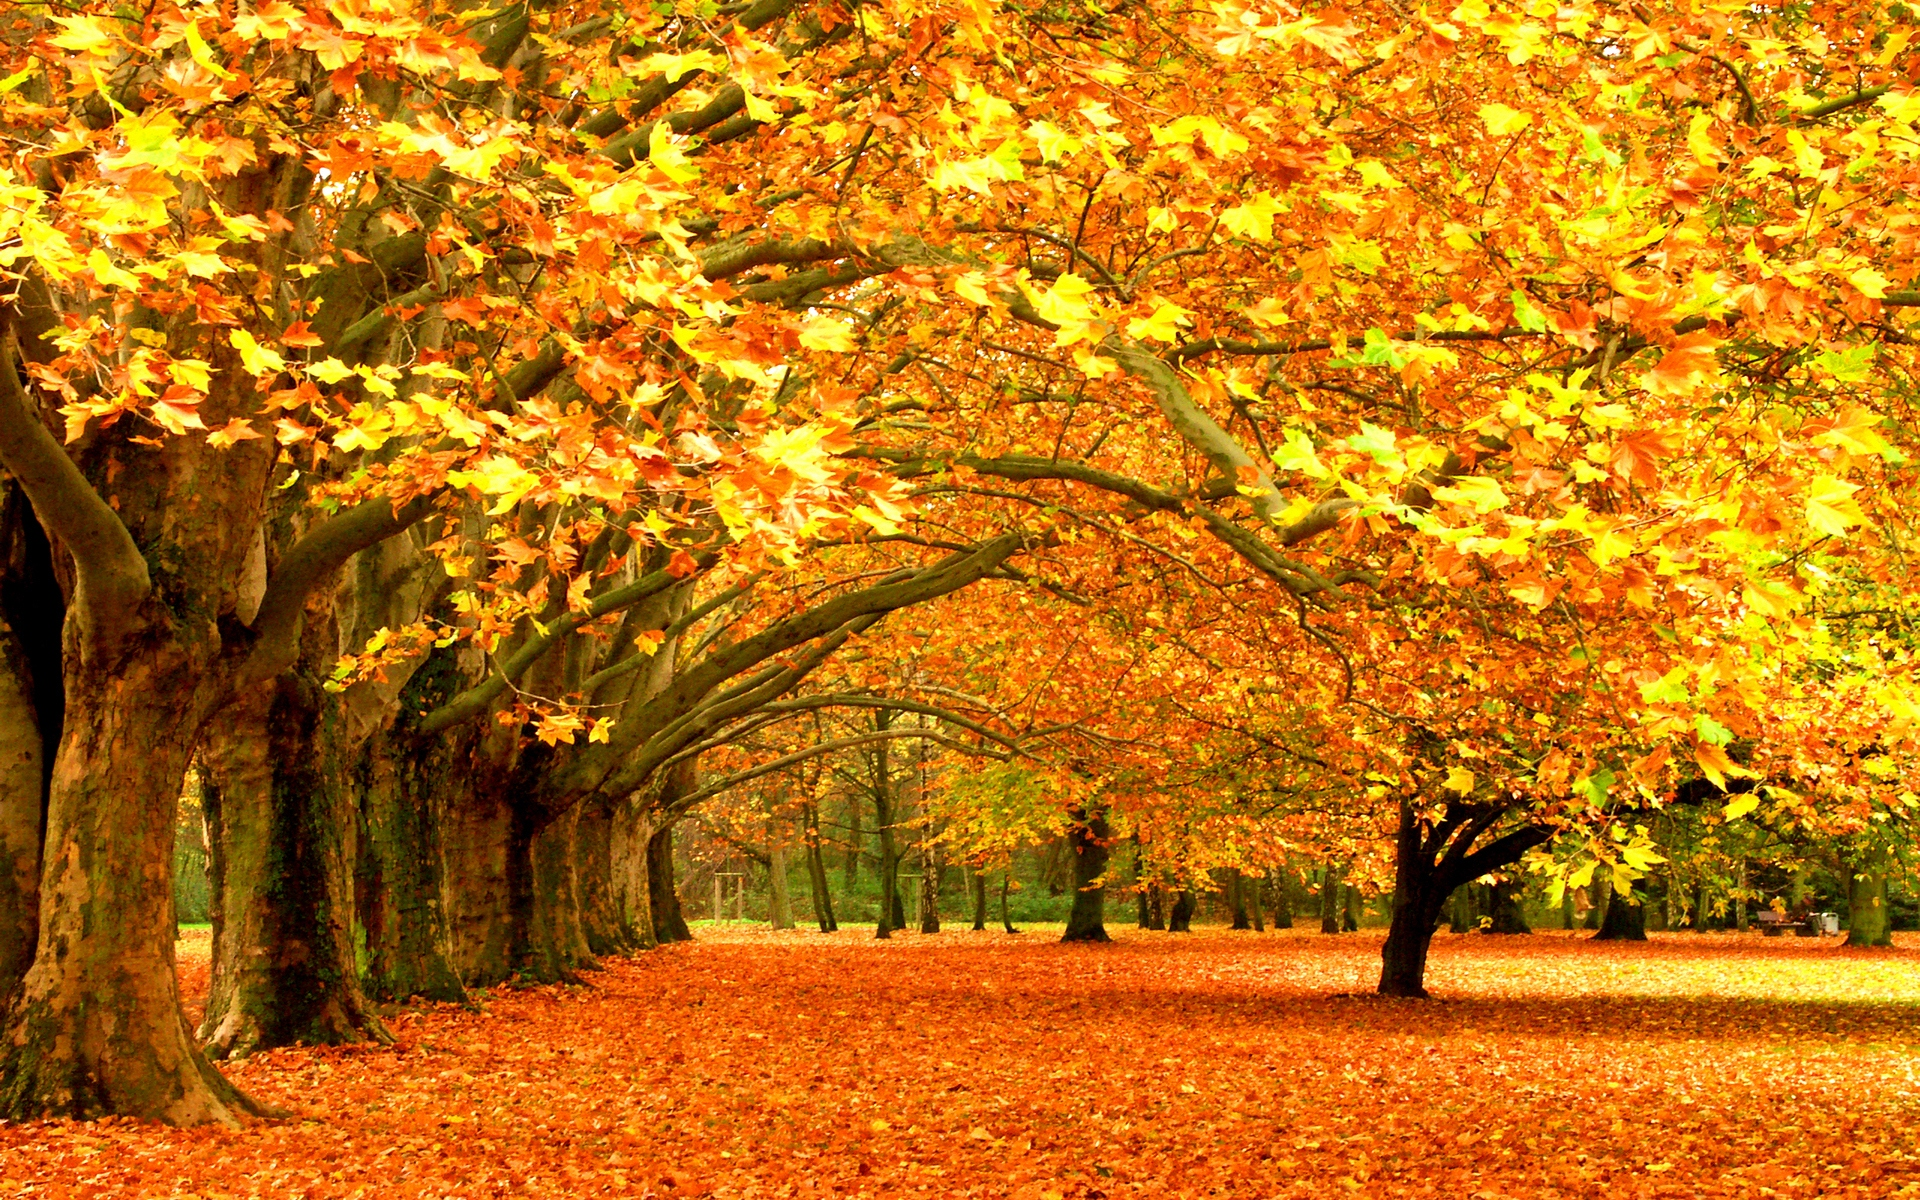 HD Autumn Tree Beauty Wallpapers - HD Wallpapers - Desktop ...